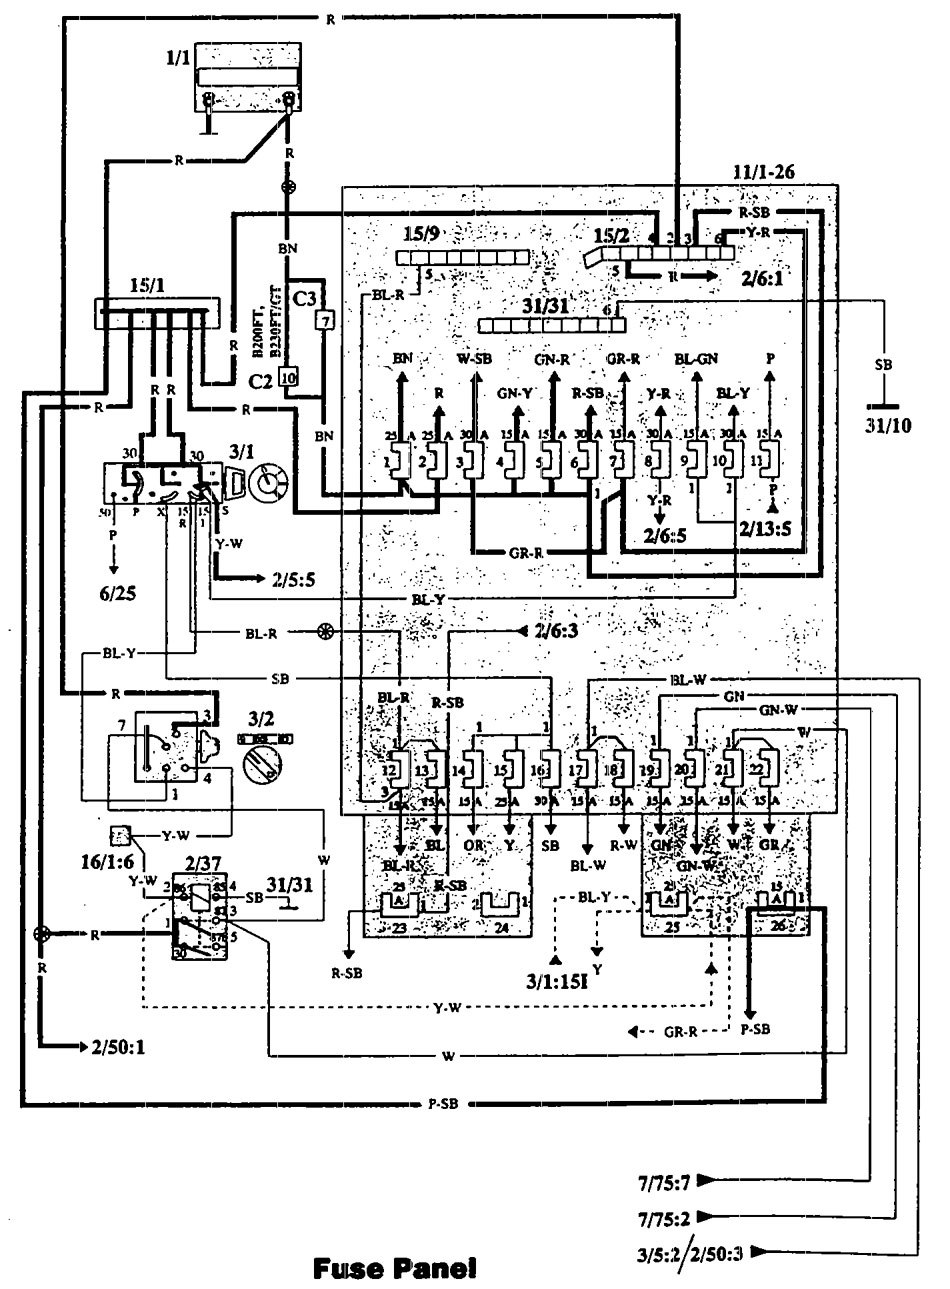 volvo 940  1993  - wiring diagrams - fuse panel